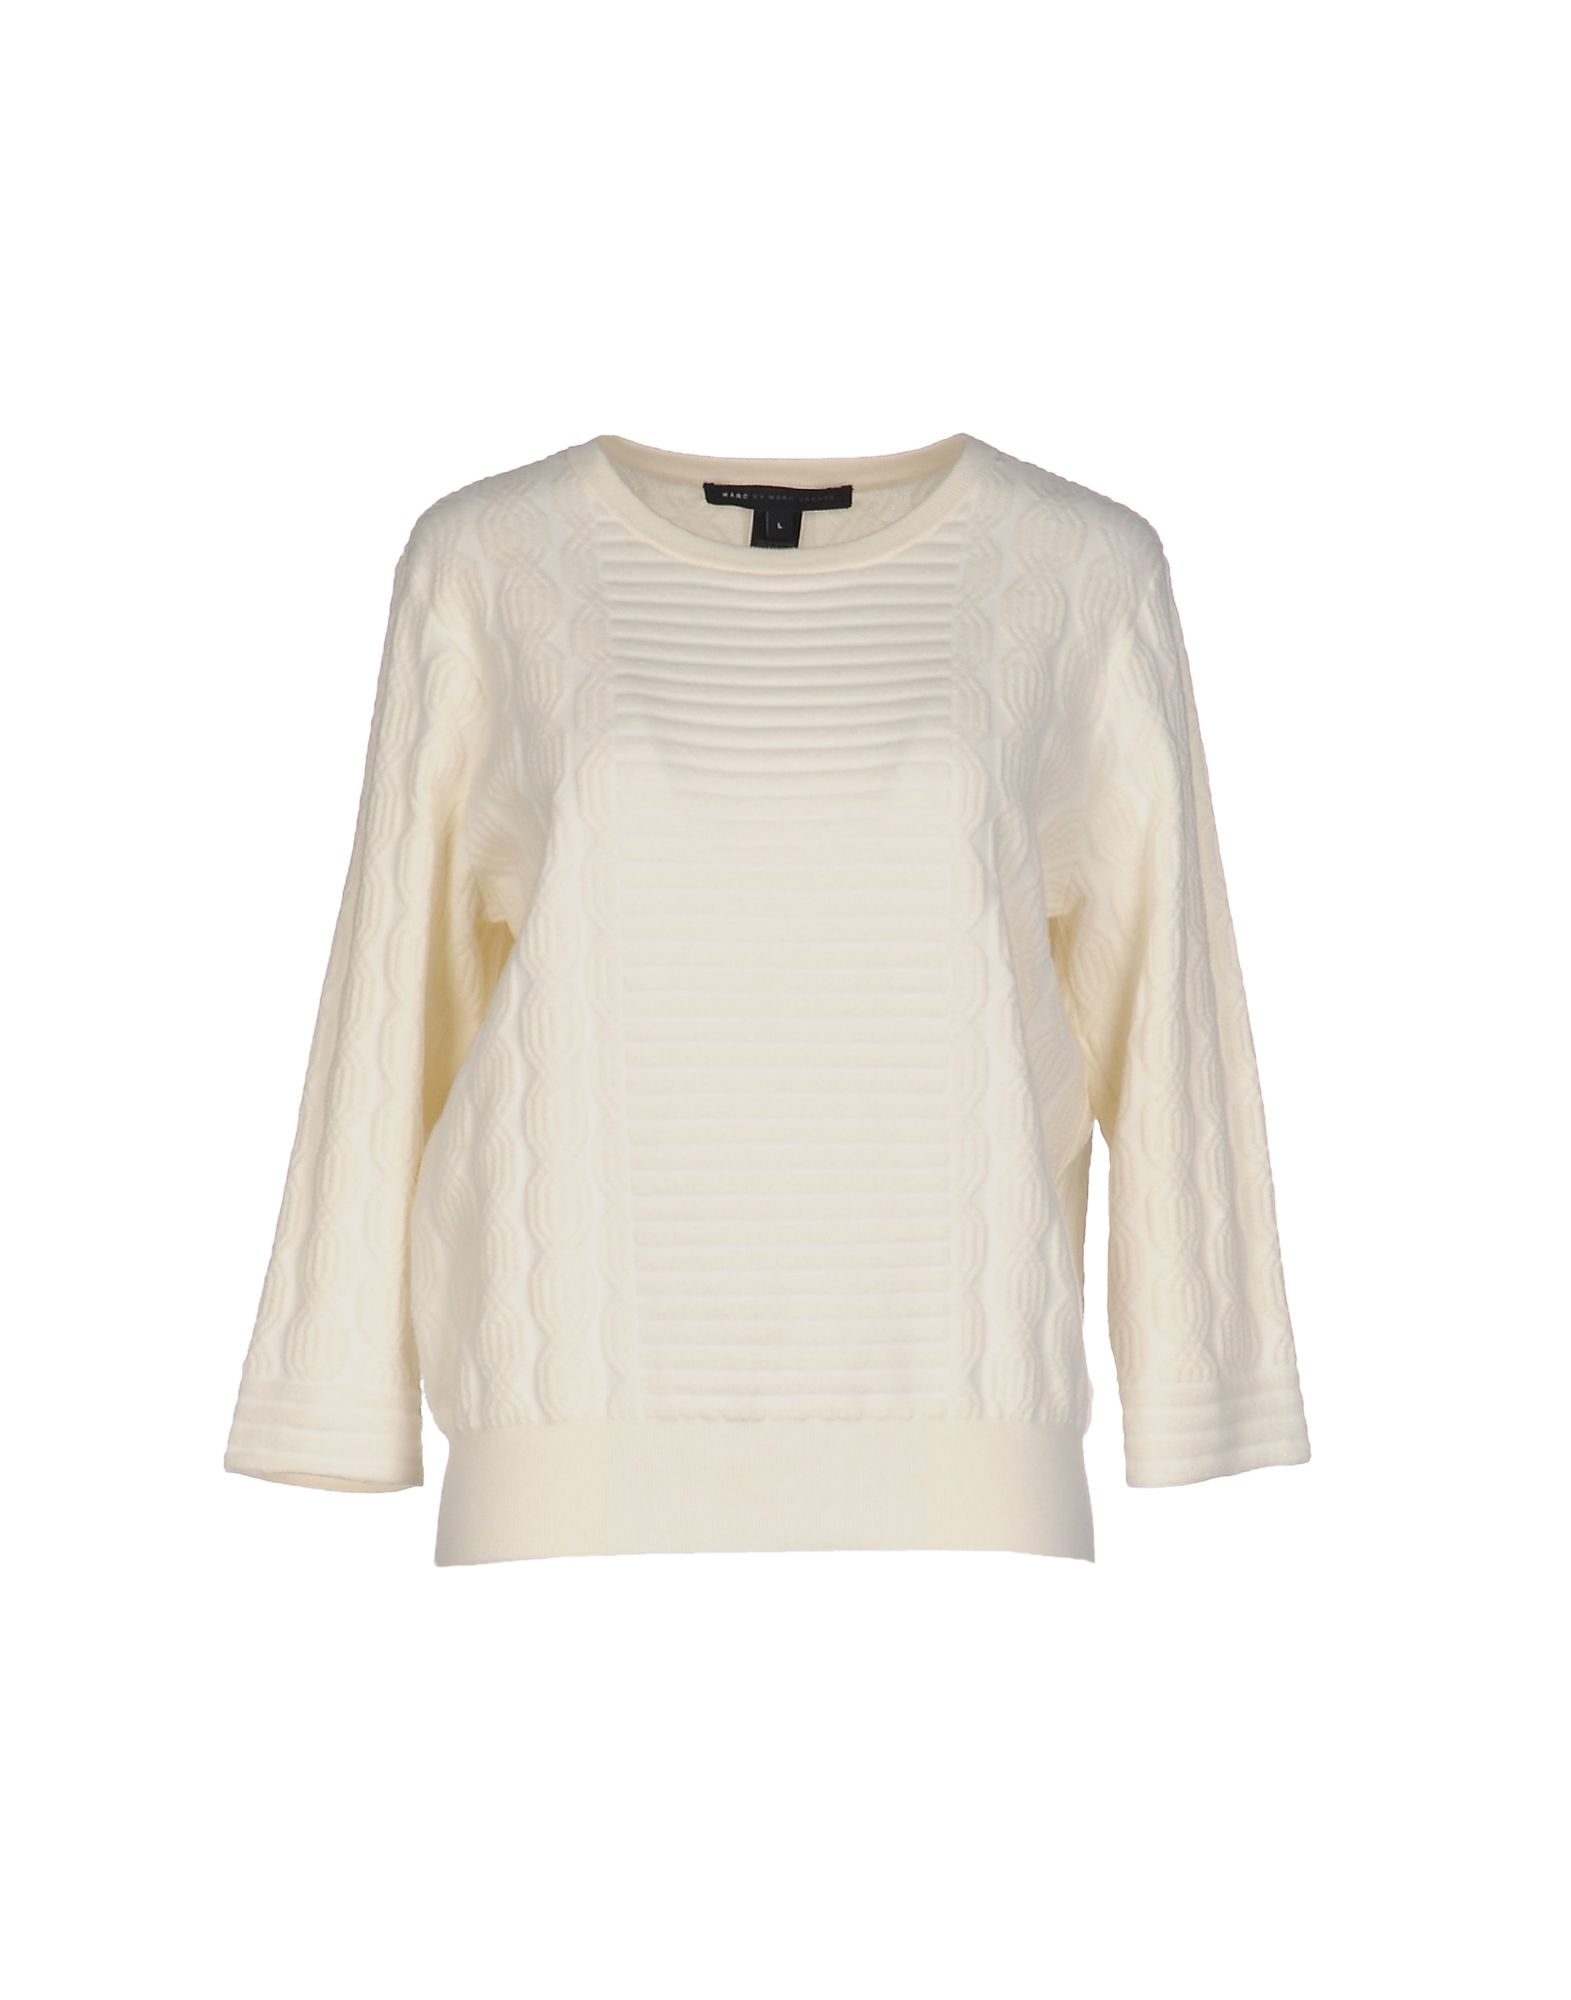 marc by marc jacobs sweater in white lyst. Black Bedroom Furniture Sets. Home Design Ideas